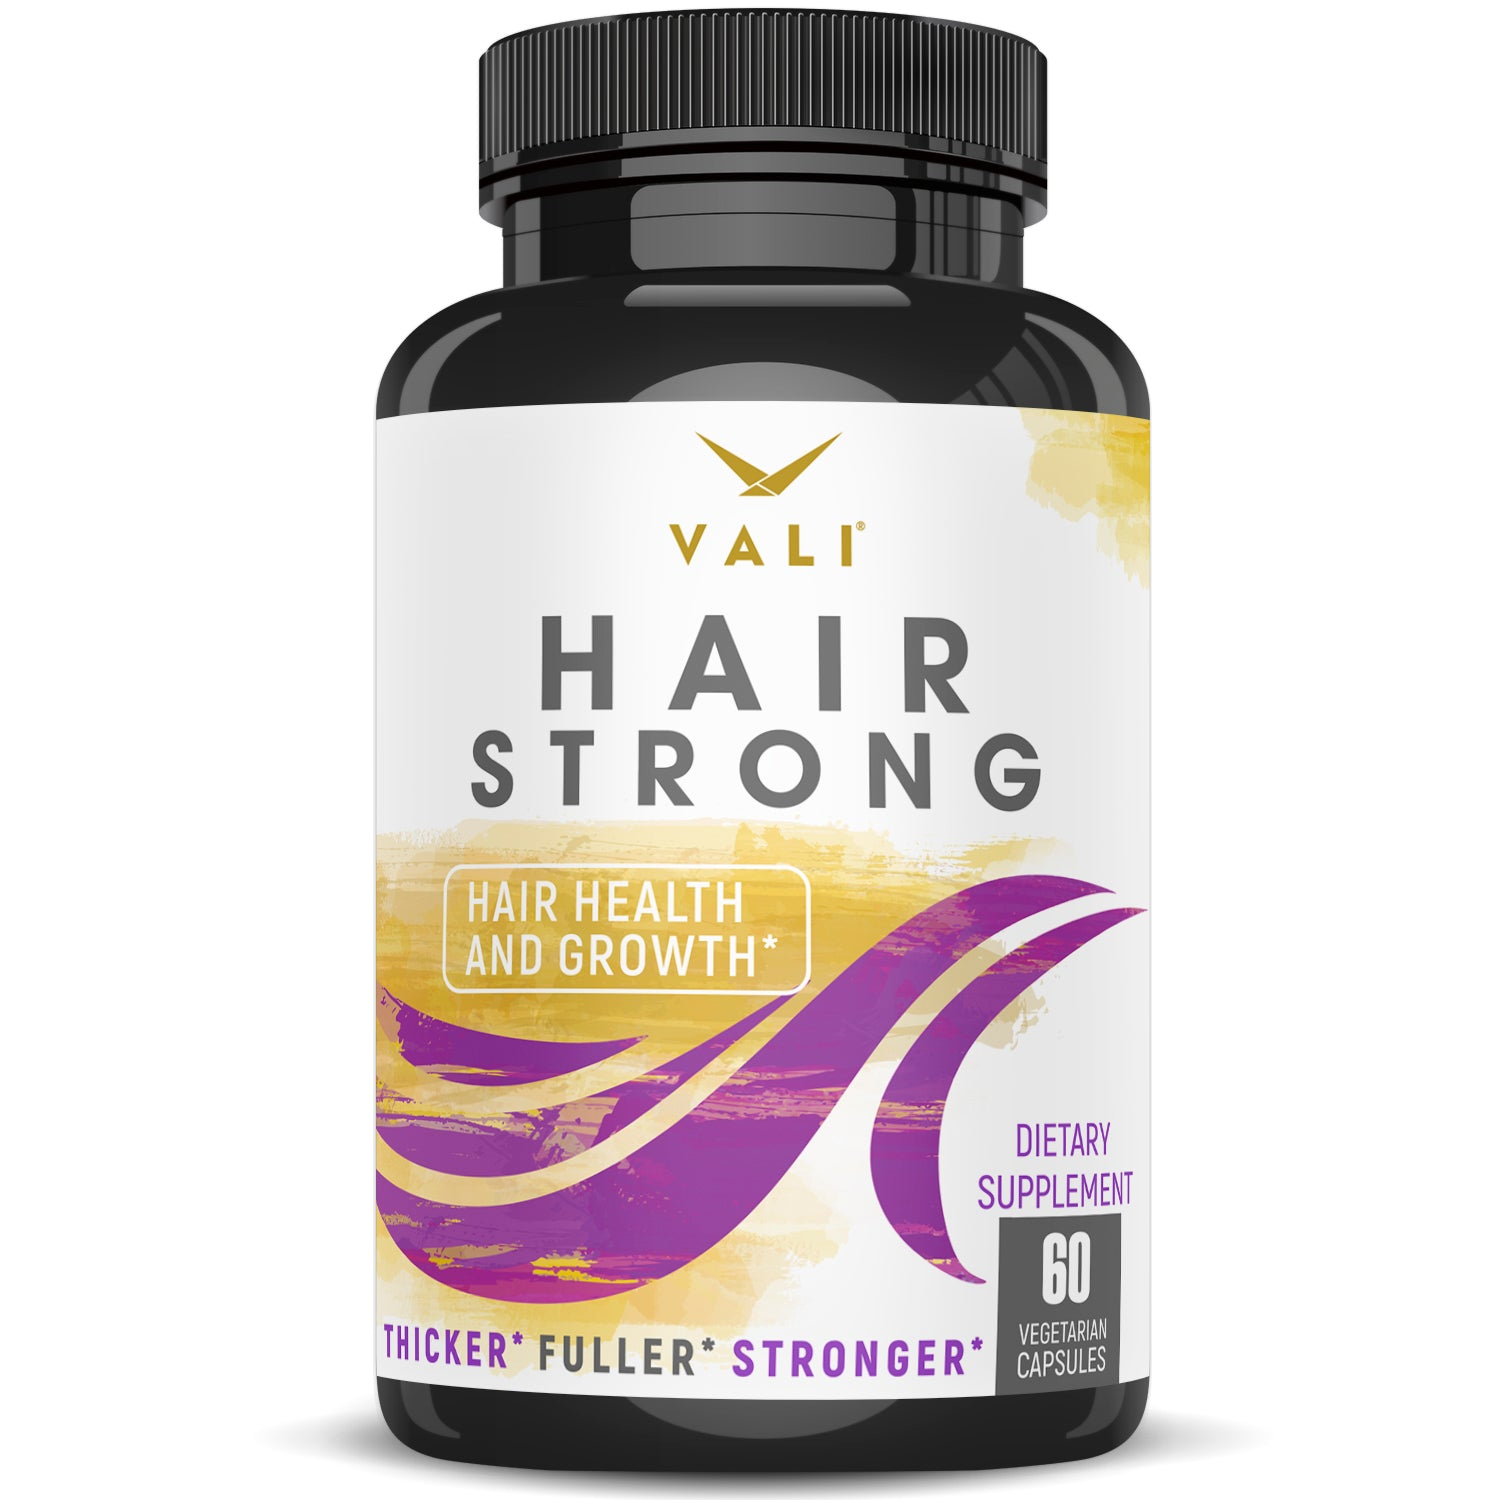 VALI Hair Strong - Hair Health and Growth Vitamins